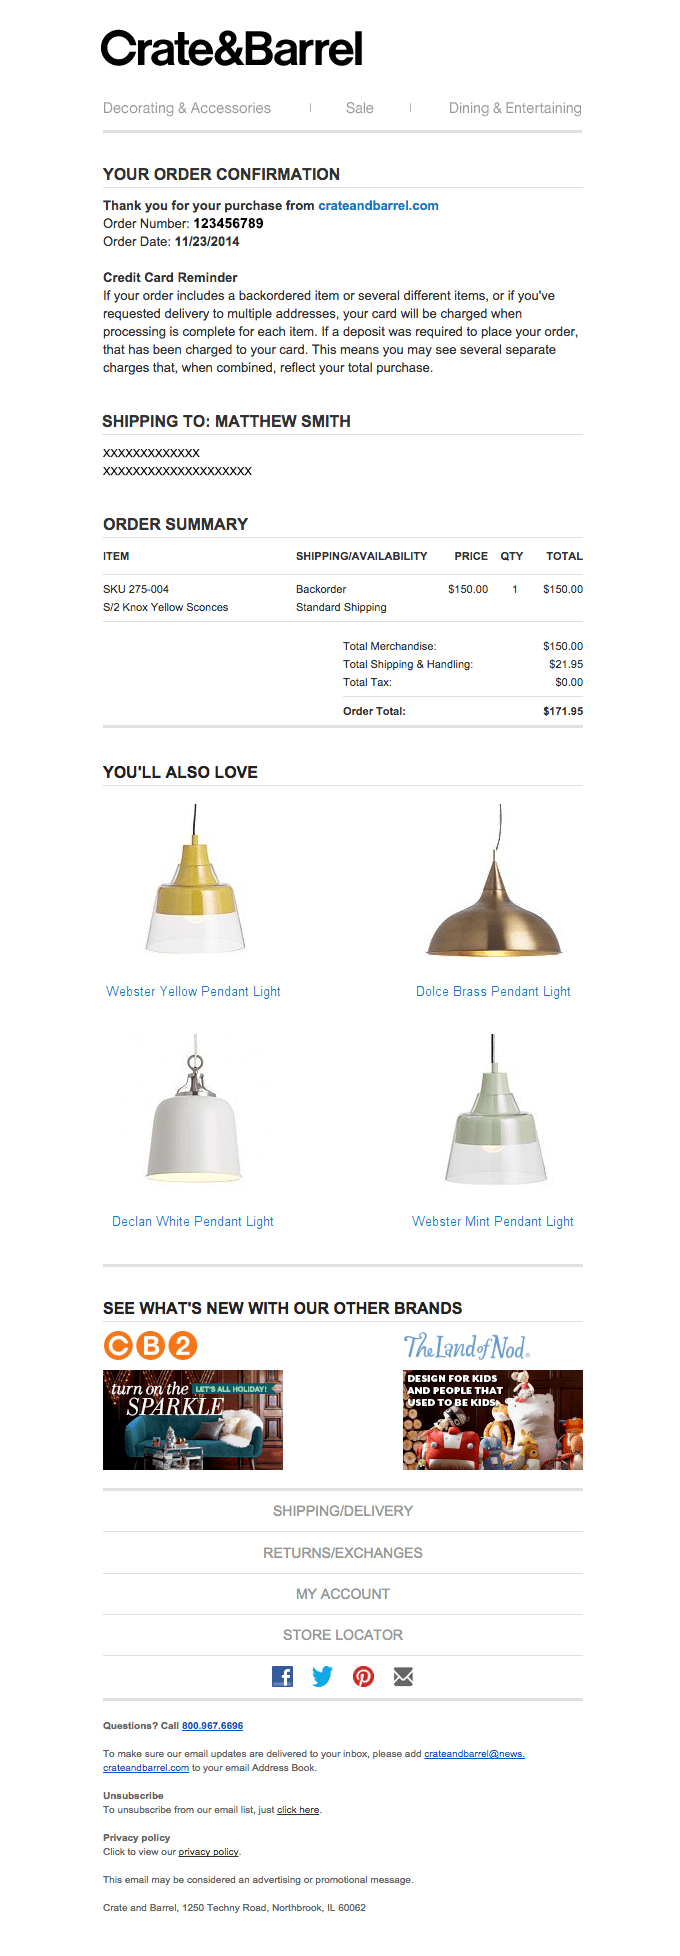 Crate & Barrel e-commerce confirmation email